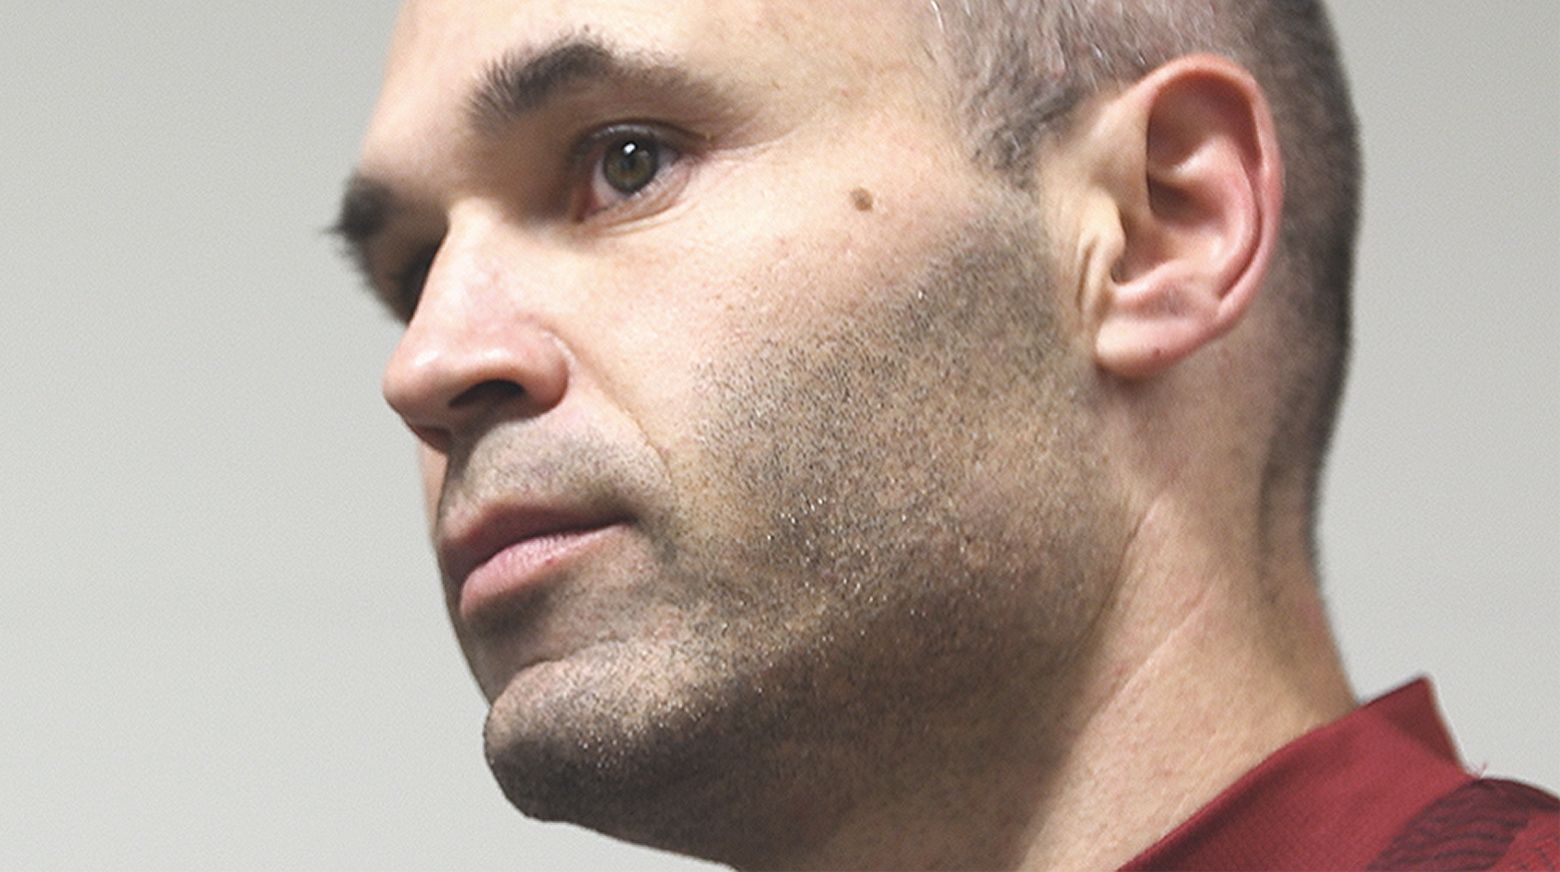 a1f3531f5671 Iniesta TV Episode 3  Road to Kobe  3 With the Rakuten Eagles at Tokyo Dome  - イニエスタTV - Watch Full Episodes Free - Japan - TV Shows - Rakuten Viki